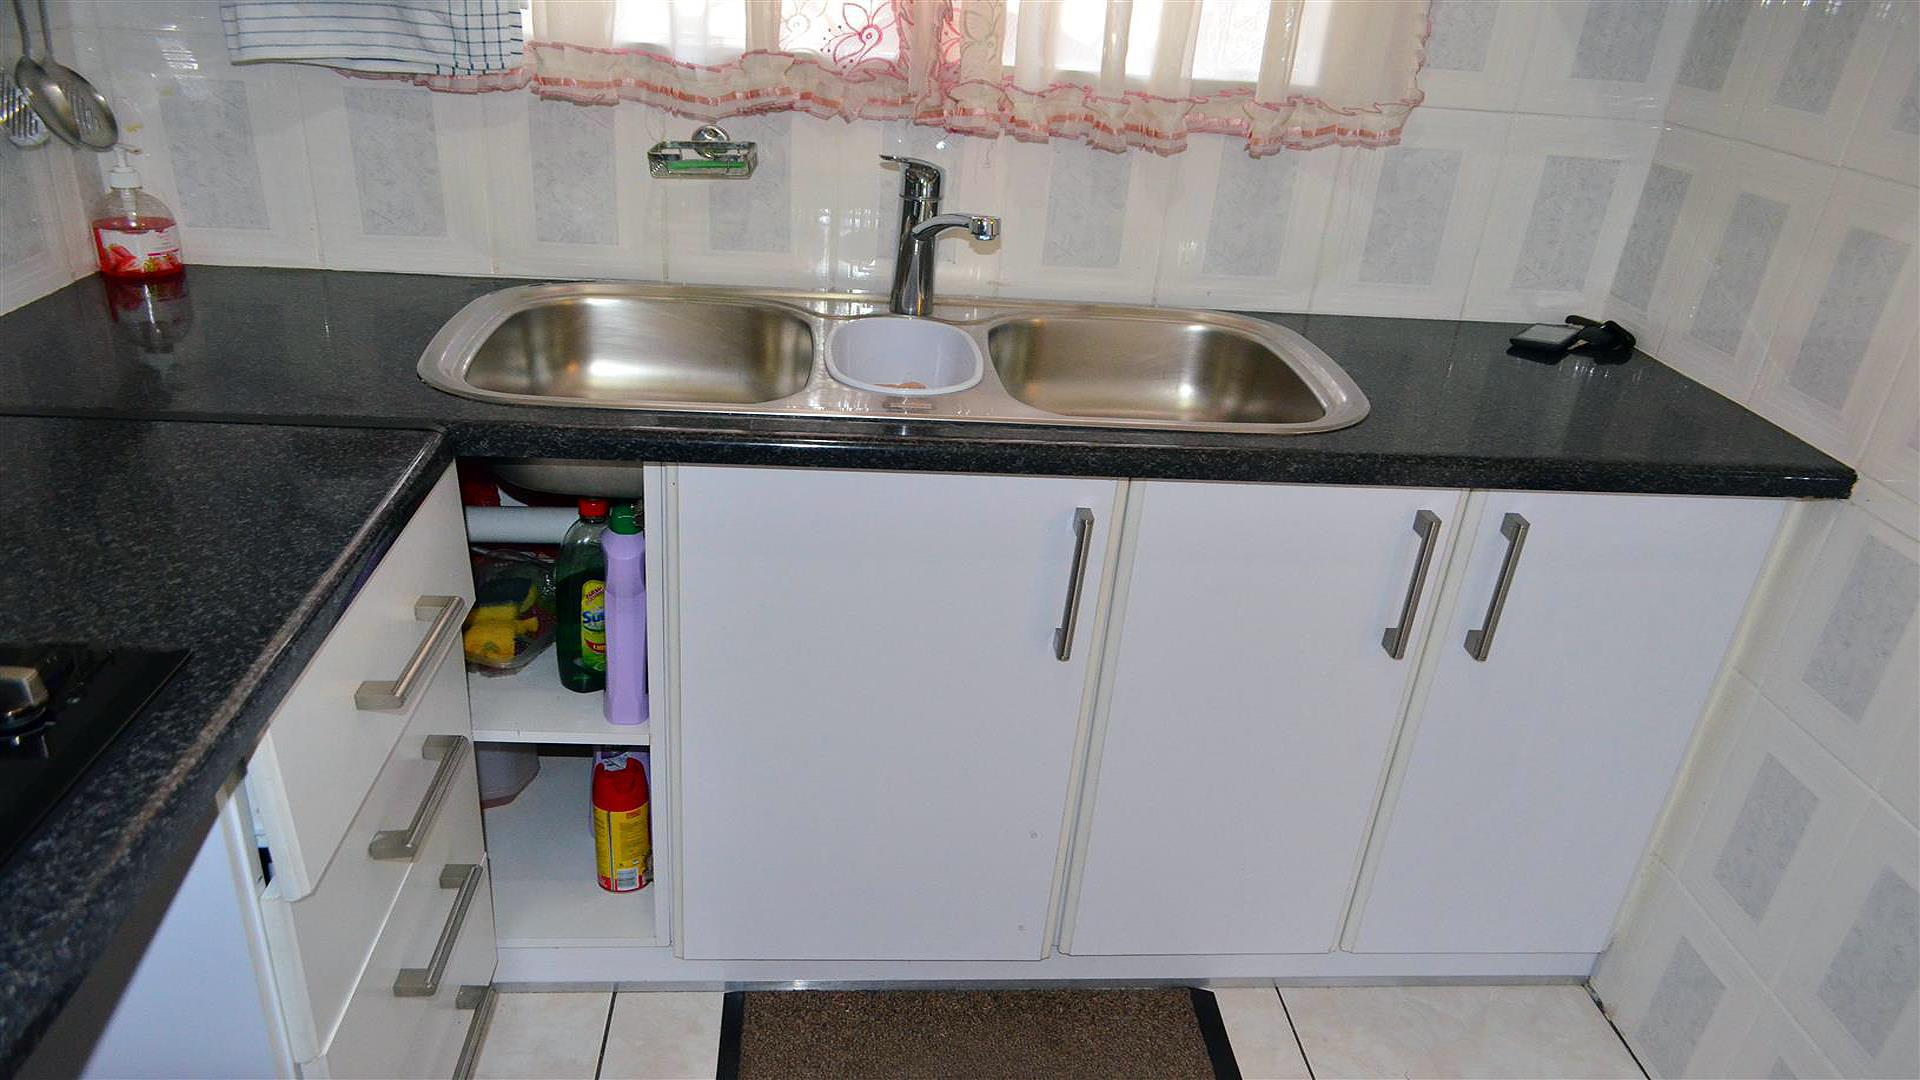 Kitchen Countertops For Sale In Durban